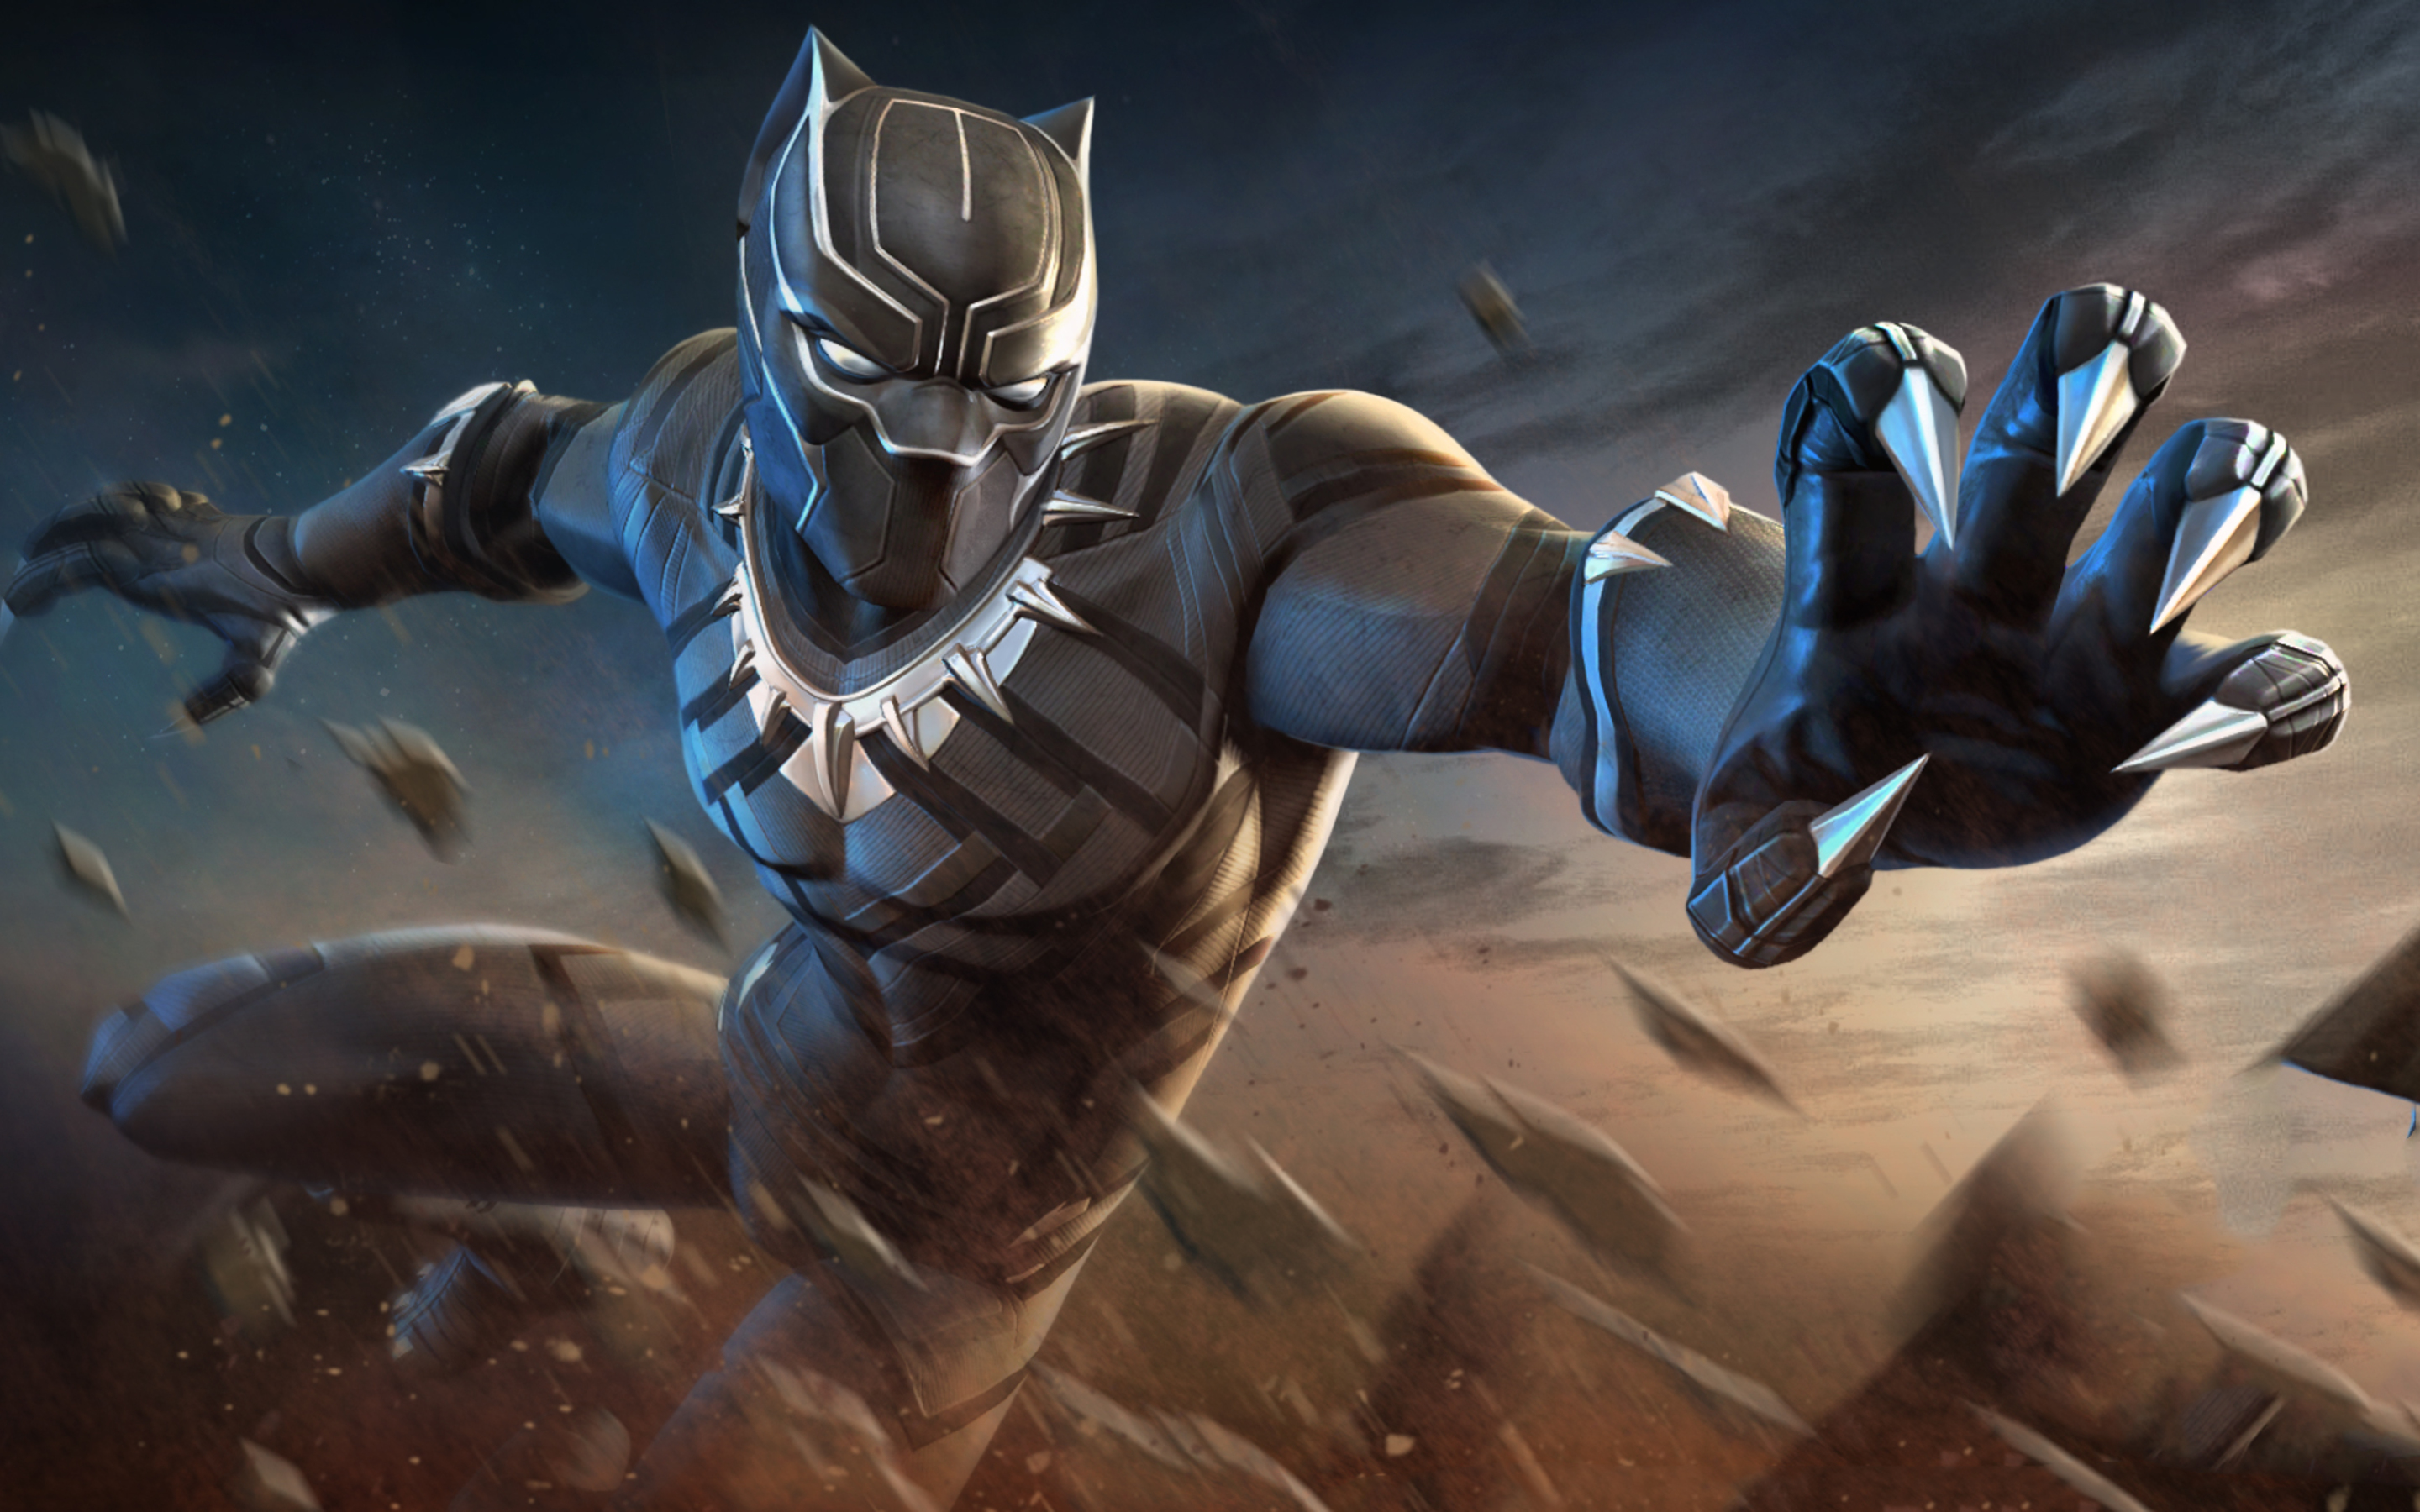 Amazing Wallpaper Marvel Macbook - black-panther-marvel-contest-of-champions-2e-2880x1800  Graphic_245598.jpg